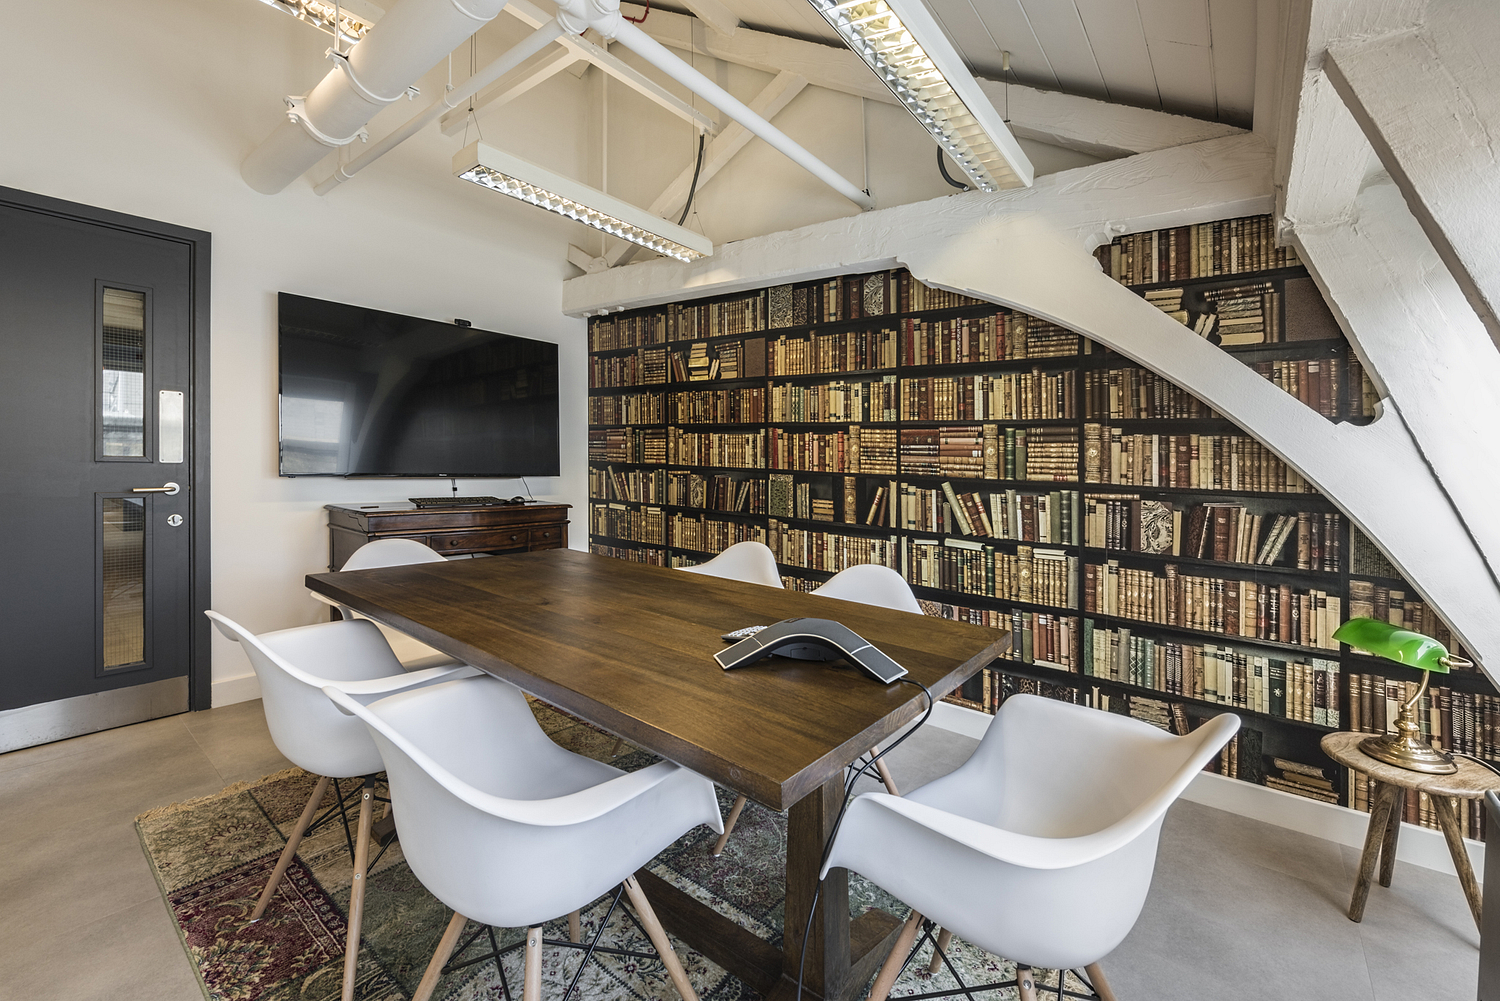 Conference room with library wallpaper, workspace, London